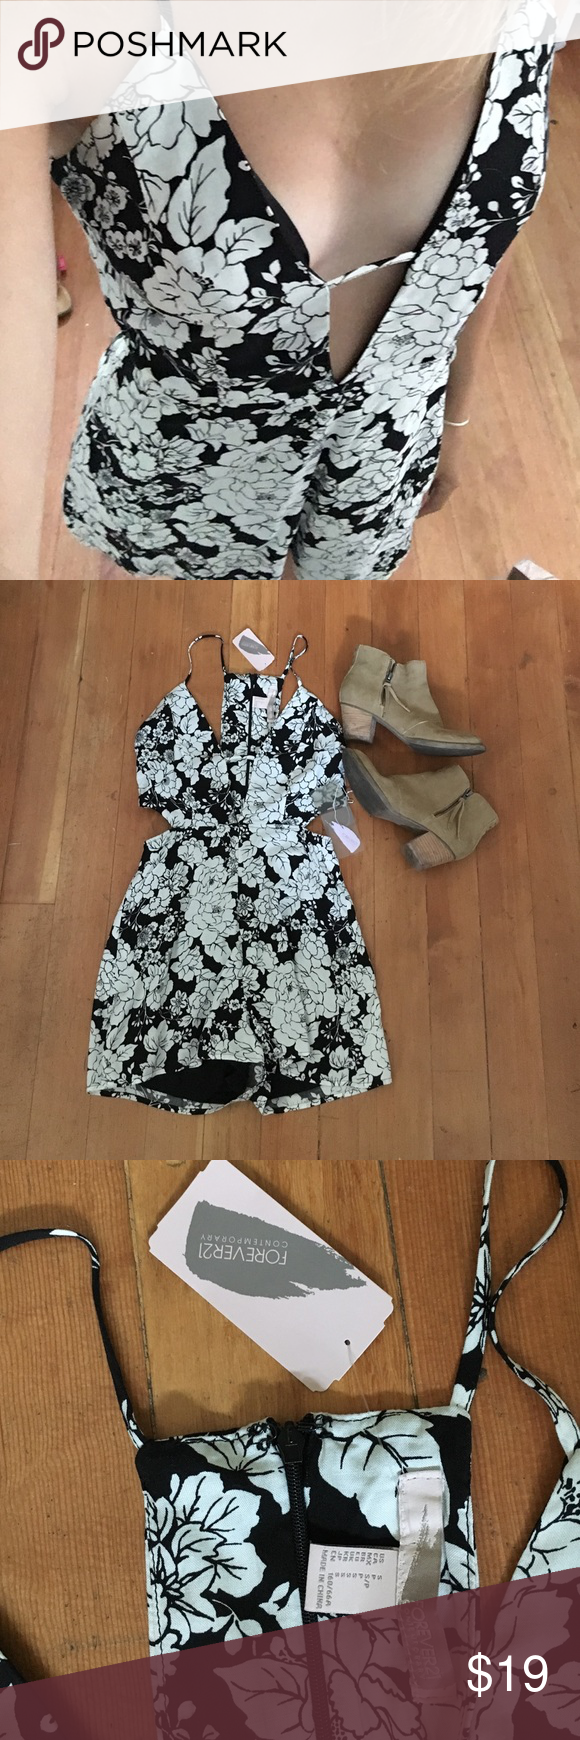 Forever 21 floral romper  NWT black and white floral romper from Forever 21! Front forms a deep V with cut outs on the waistline. Very summery and pretty design Forever 21 Dresses